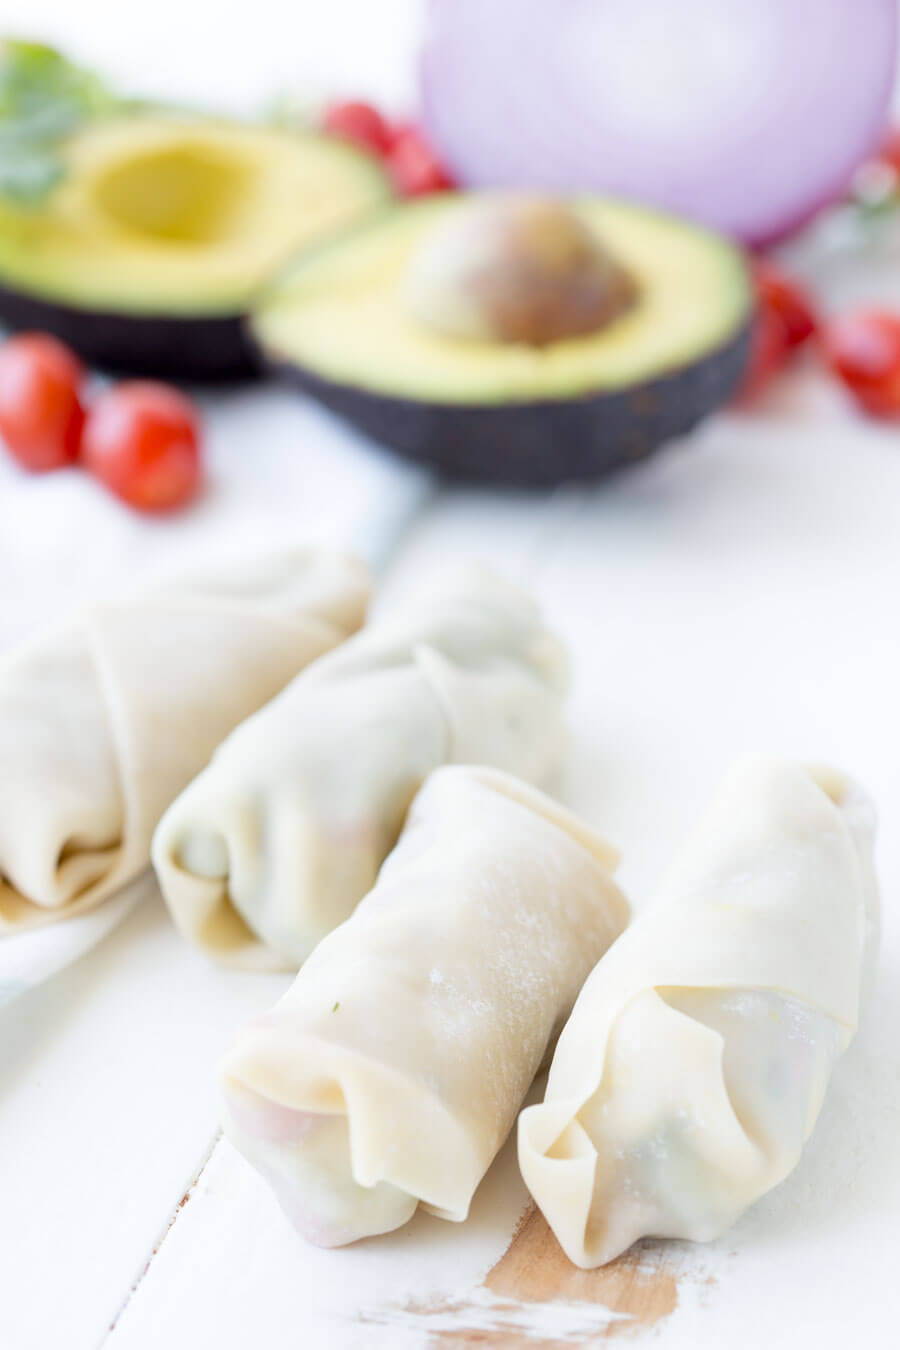 Avocado Egg Rolls: Crunchy egg roll wrapper filled with chunks of California Avocados, cilantro, tomatoes, red onion, and roasted red peppers; dipped in a creamy avocado ranch dipping sauce!